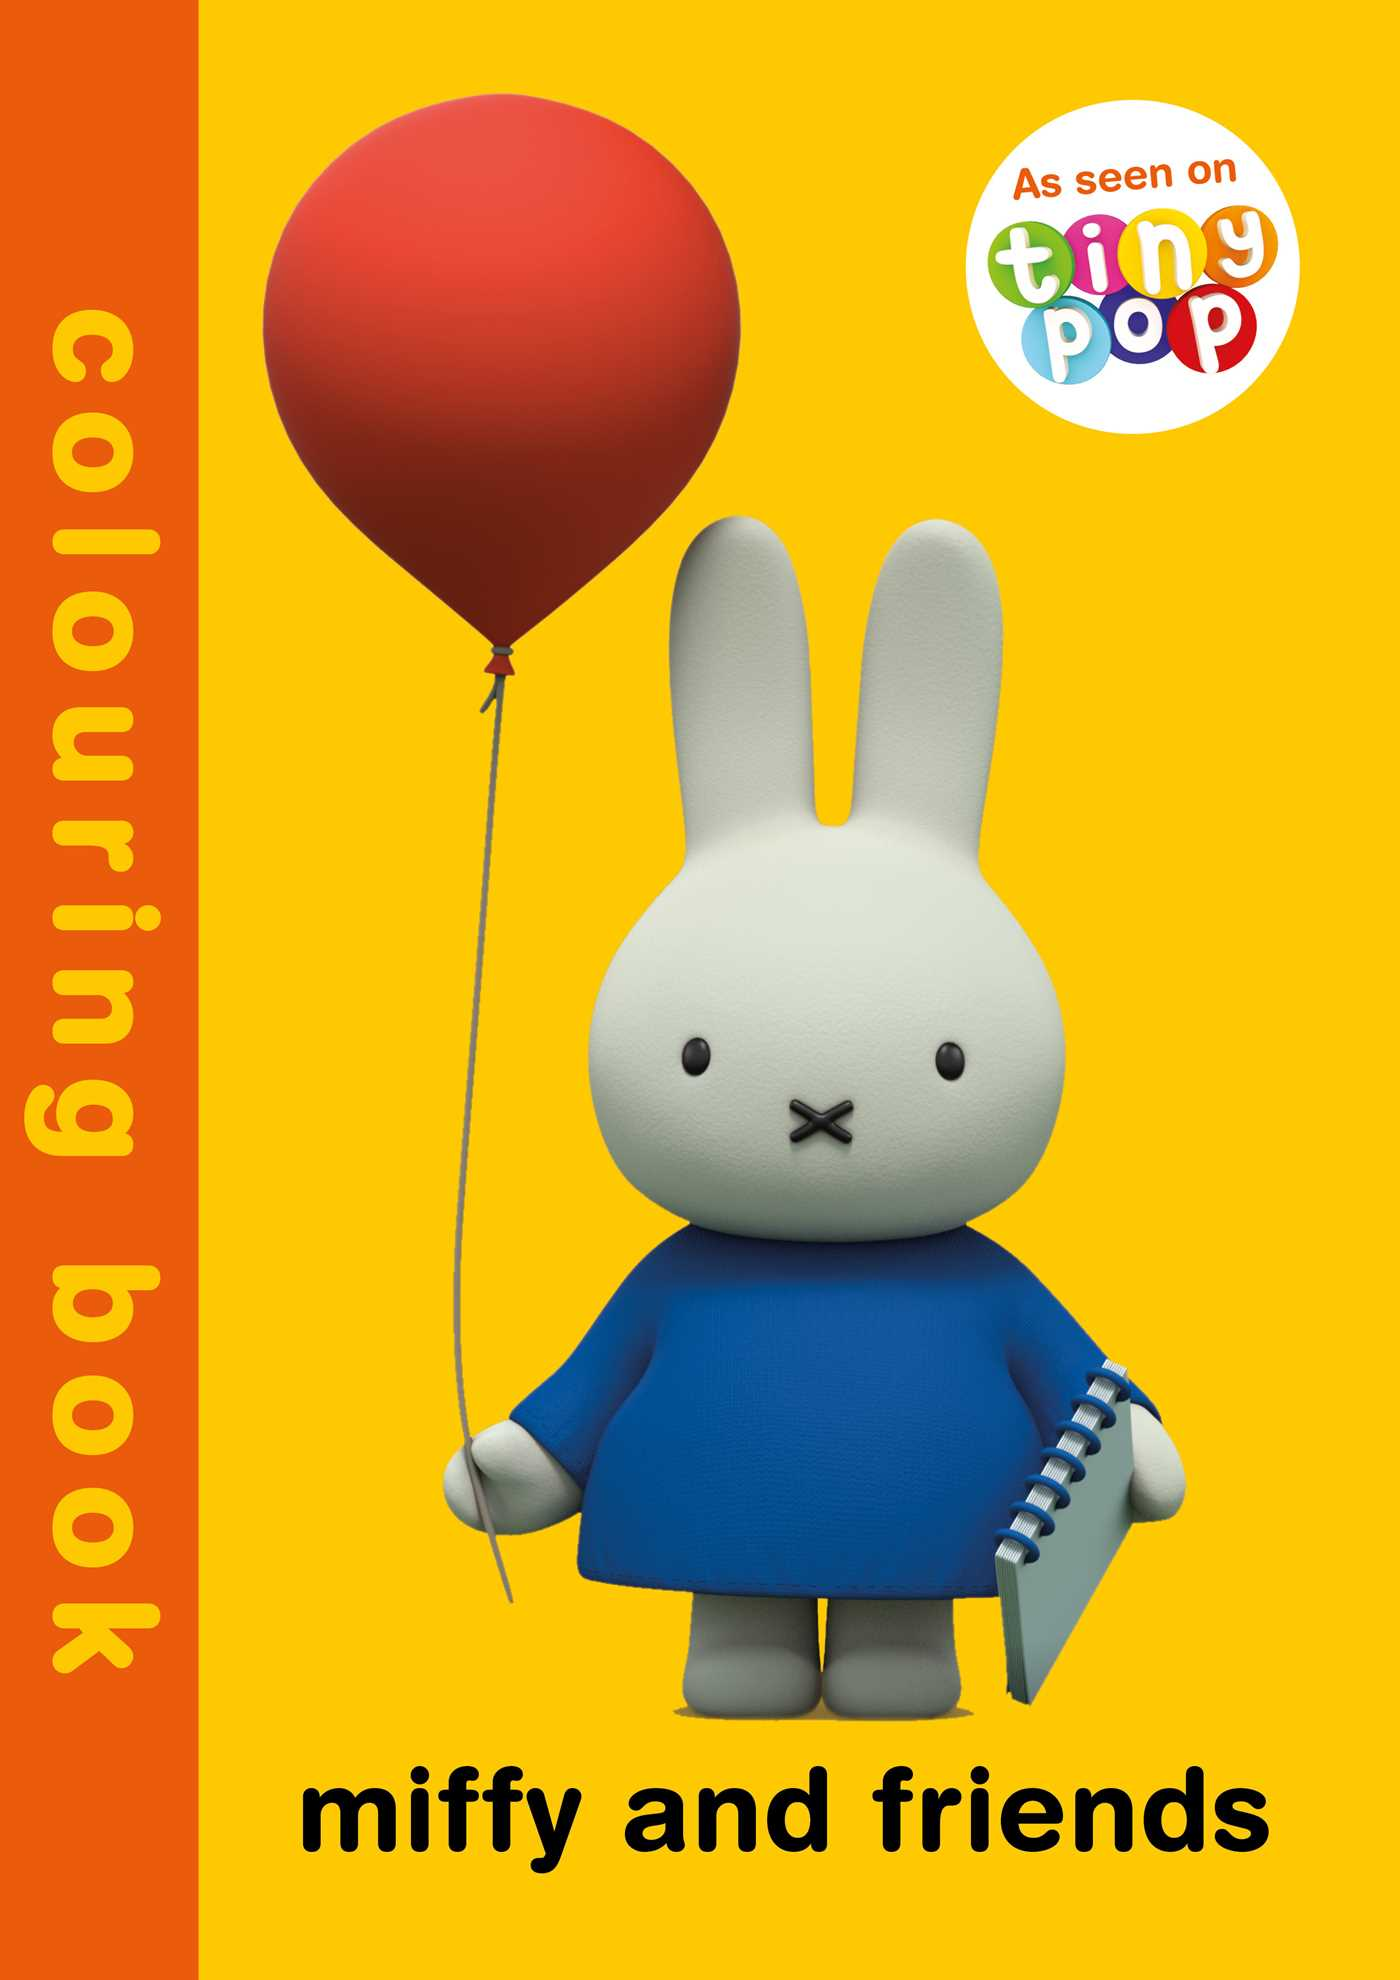 Miffy and friends colouring book 9781471163302 hr